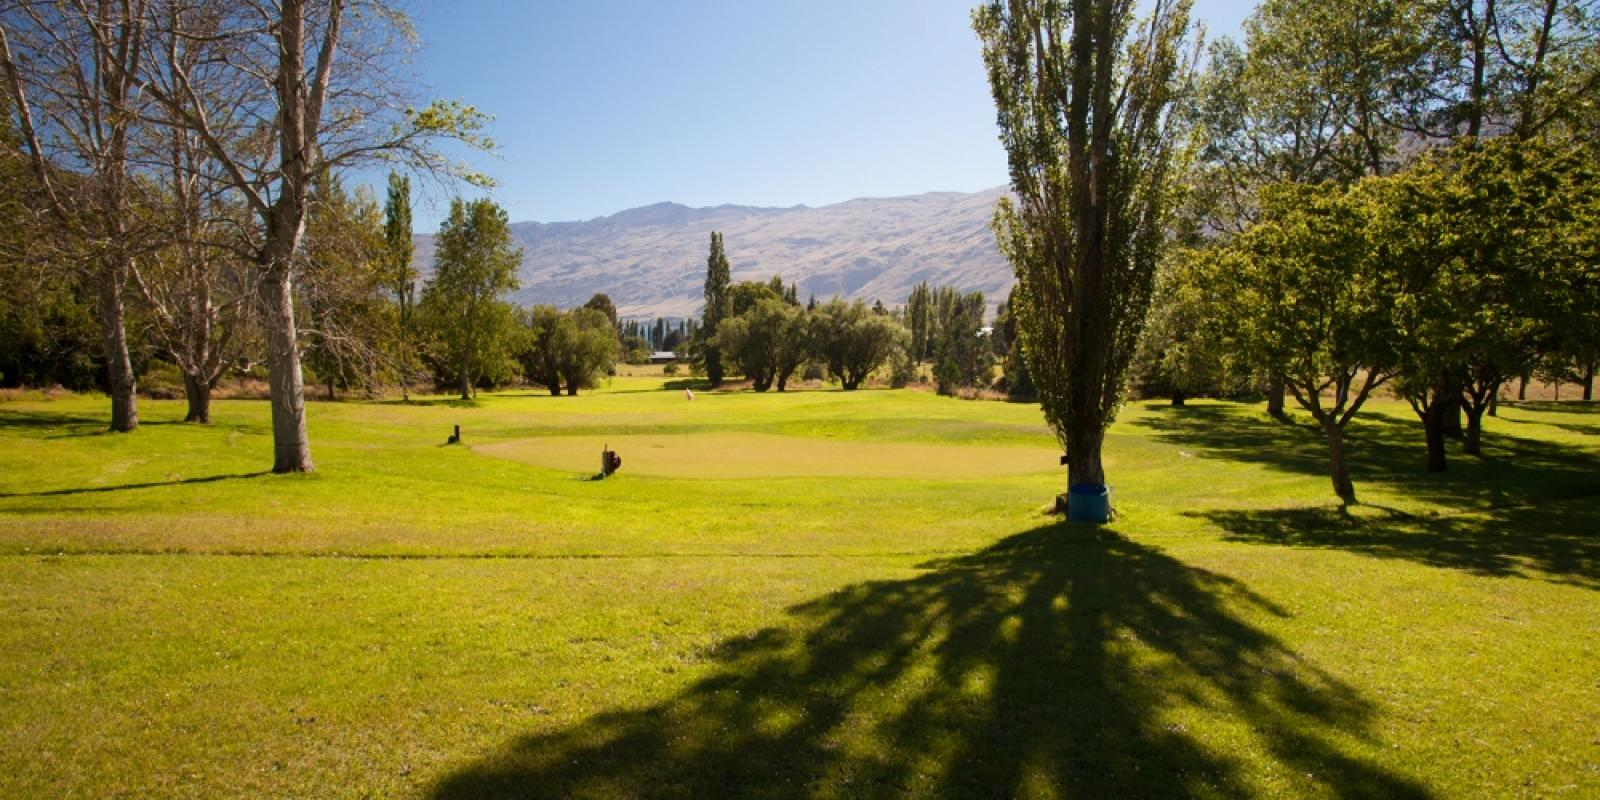 Kingston golf club in Queenstown